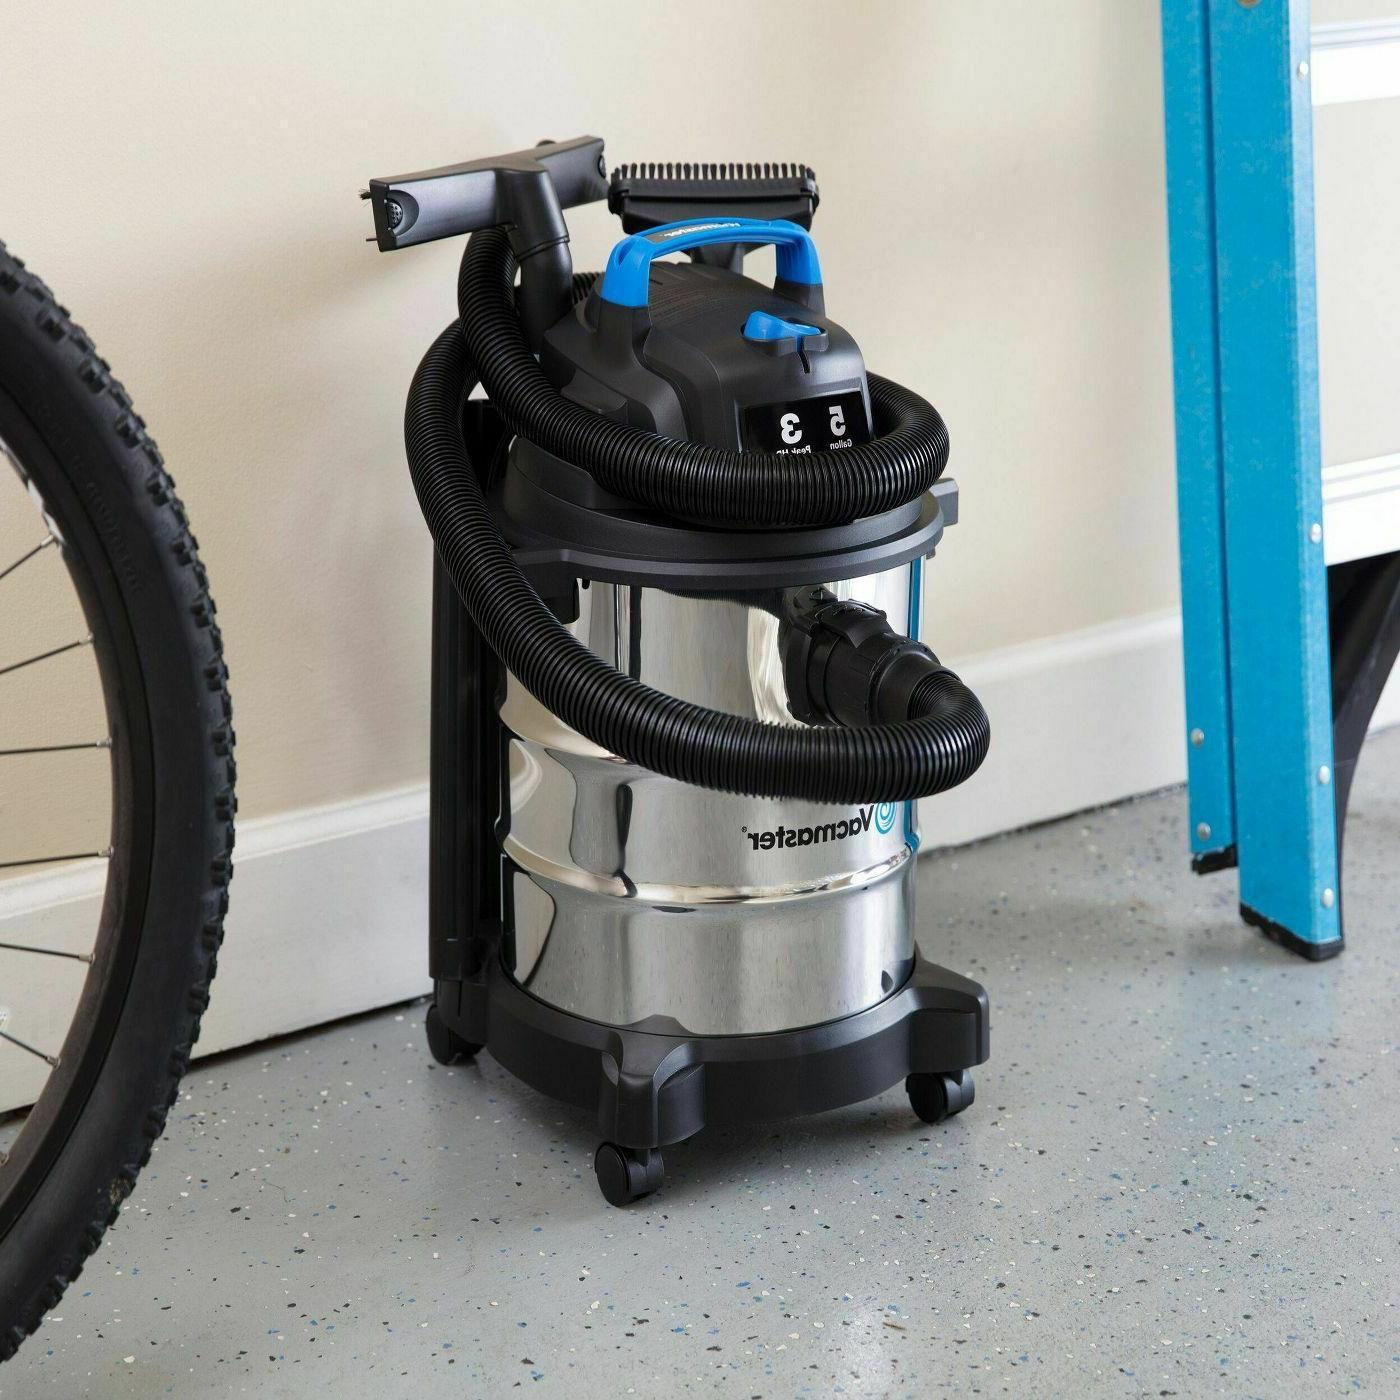 Stainless Vac Cleaner 3 Blower